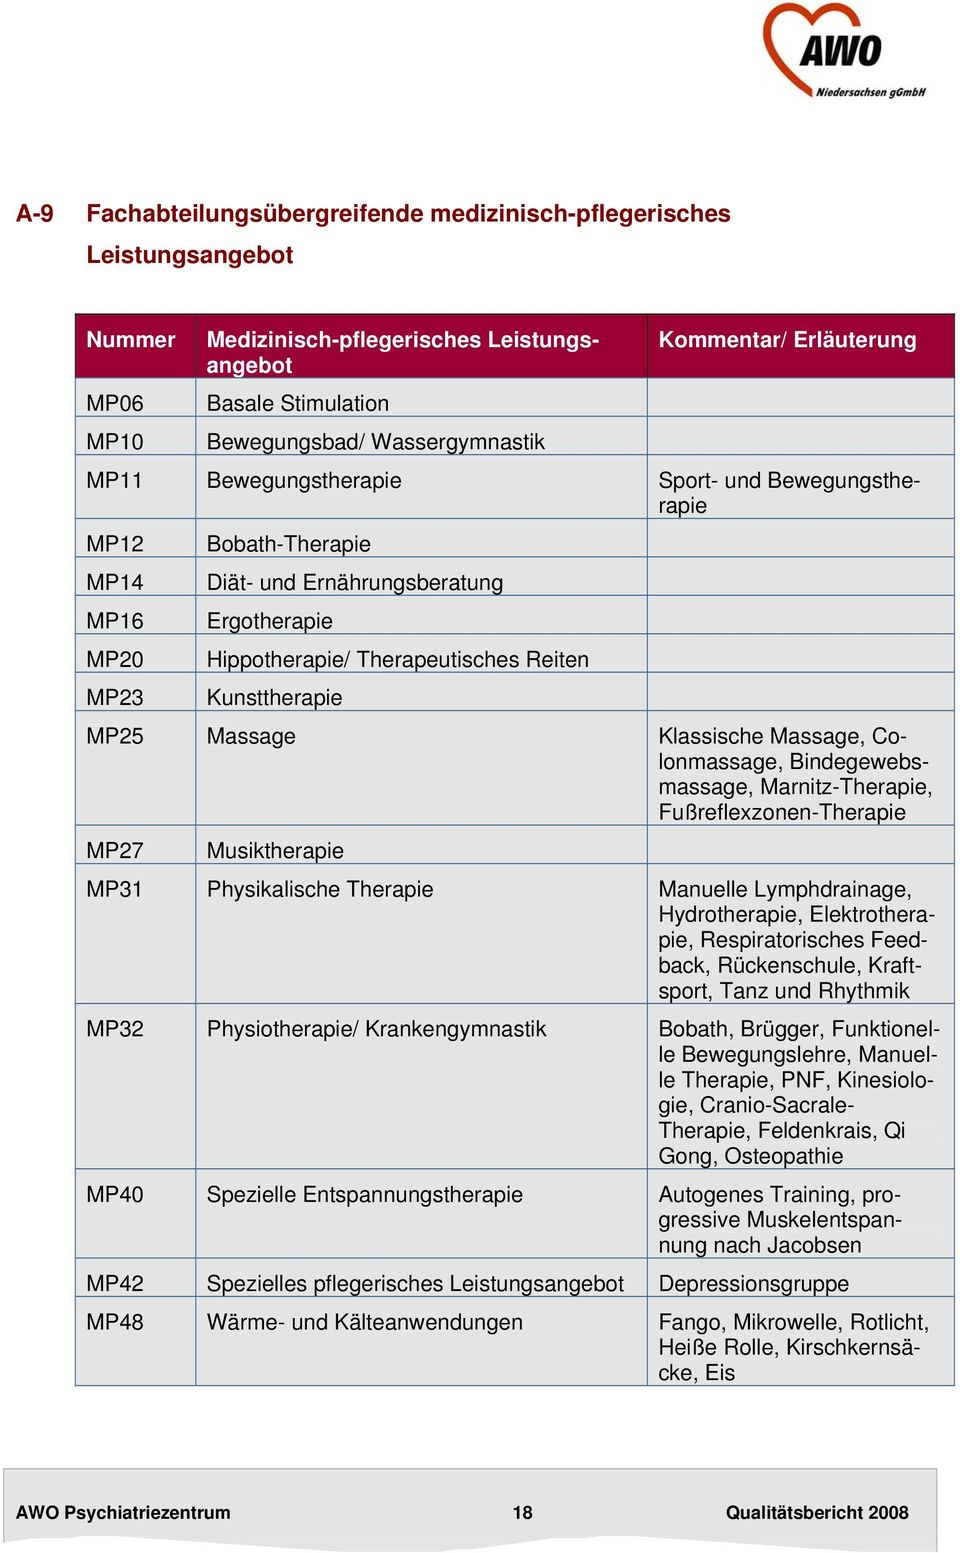 MP25 Massage Klassische Massage, Colonmassage, Bindegewebsmassage, Marnitz-Therapie, Fußreflexzonen-Therapie MP27 Musiktherapie MP31 Physikalische Therapie Manuelle Lymphdrainage, Hydrotherapie,